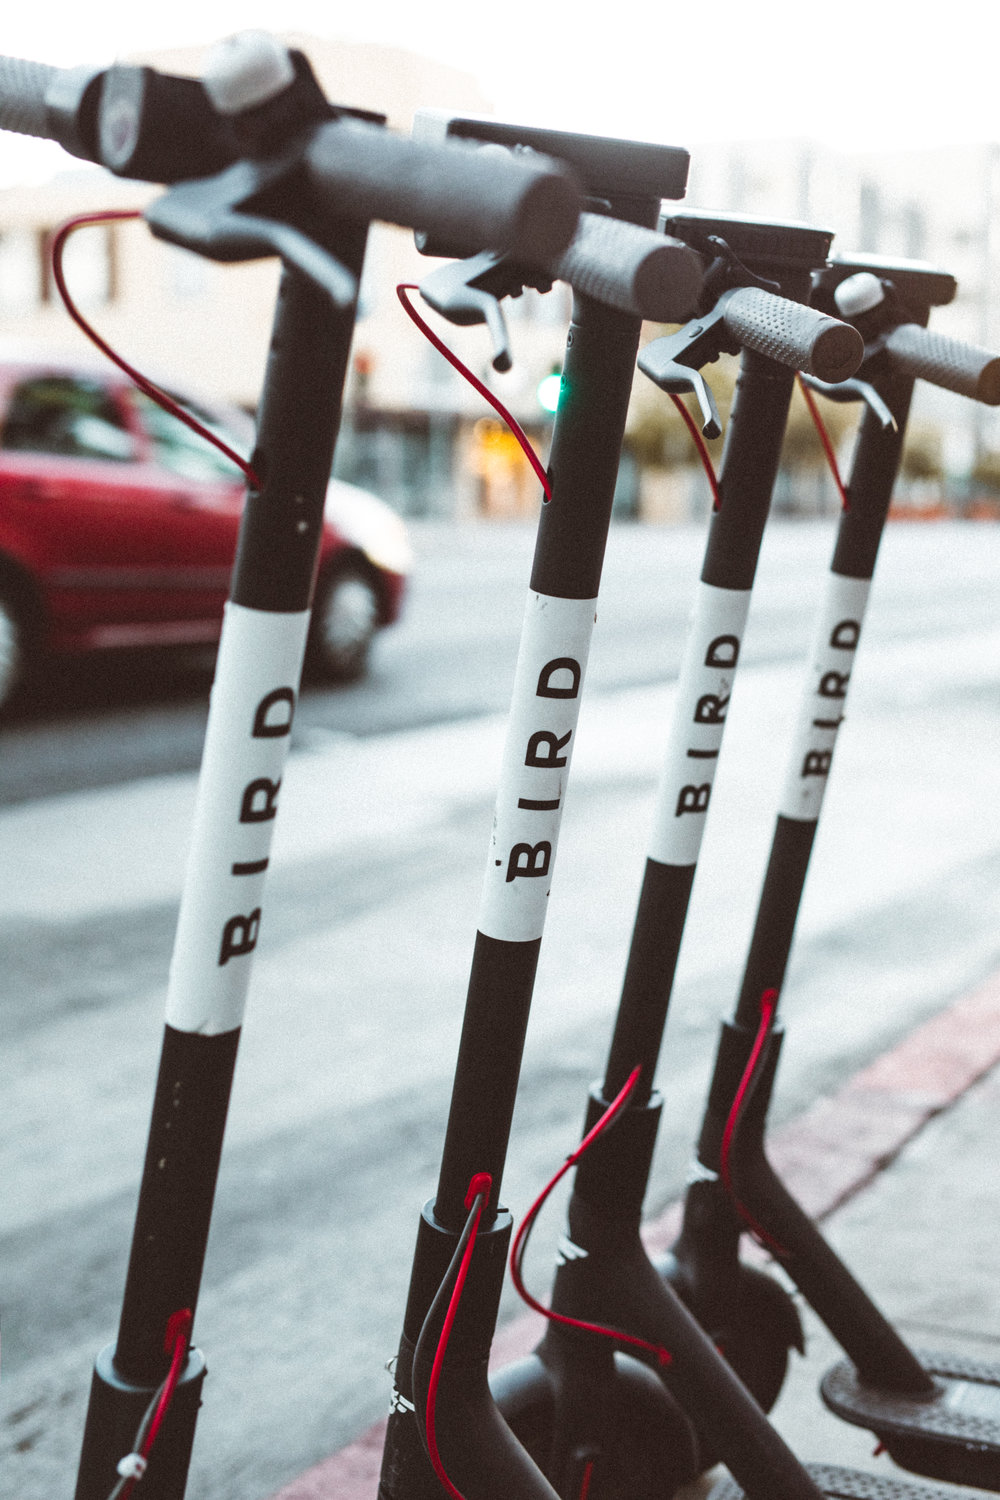 Electric scooter sharing app launches London pilot -